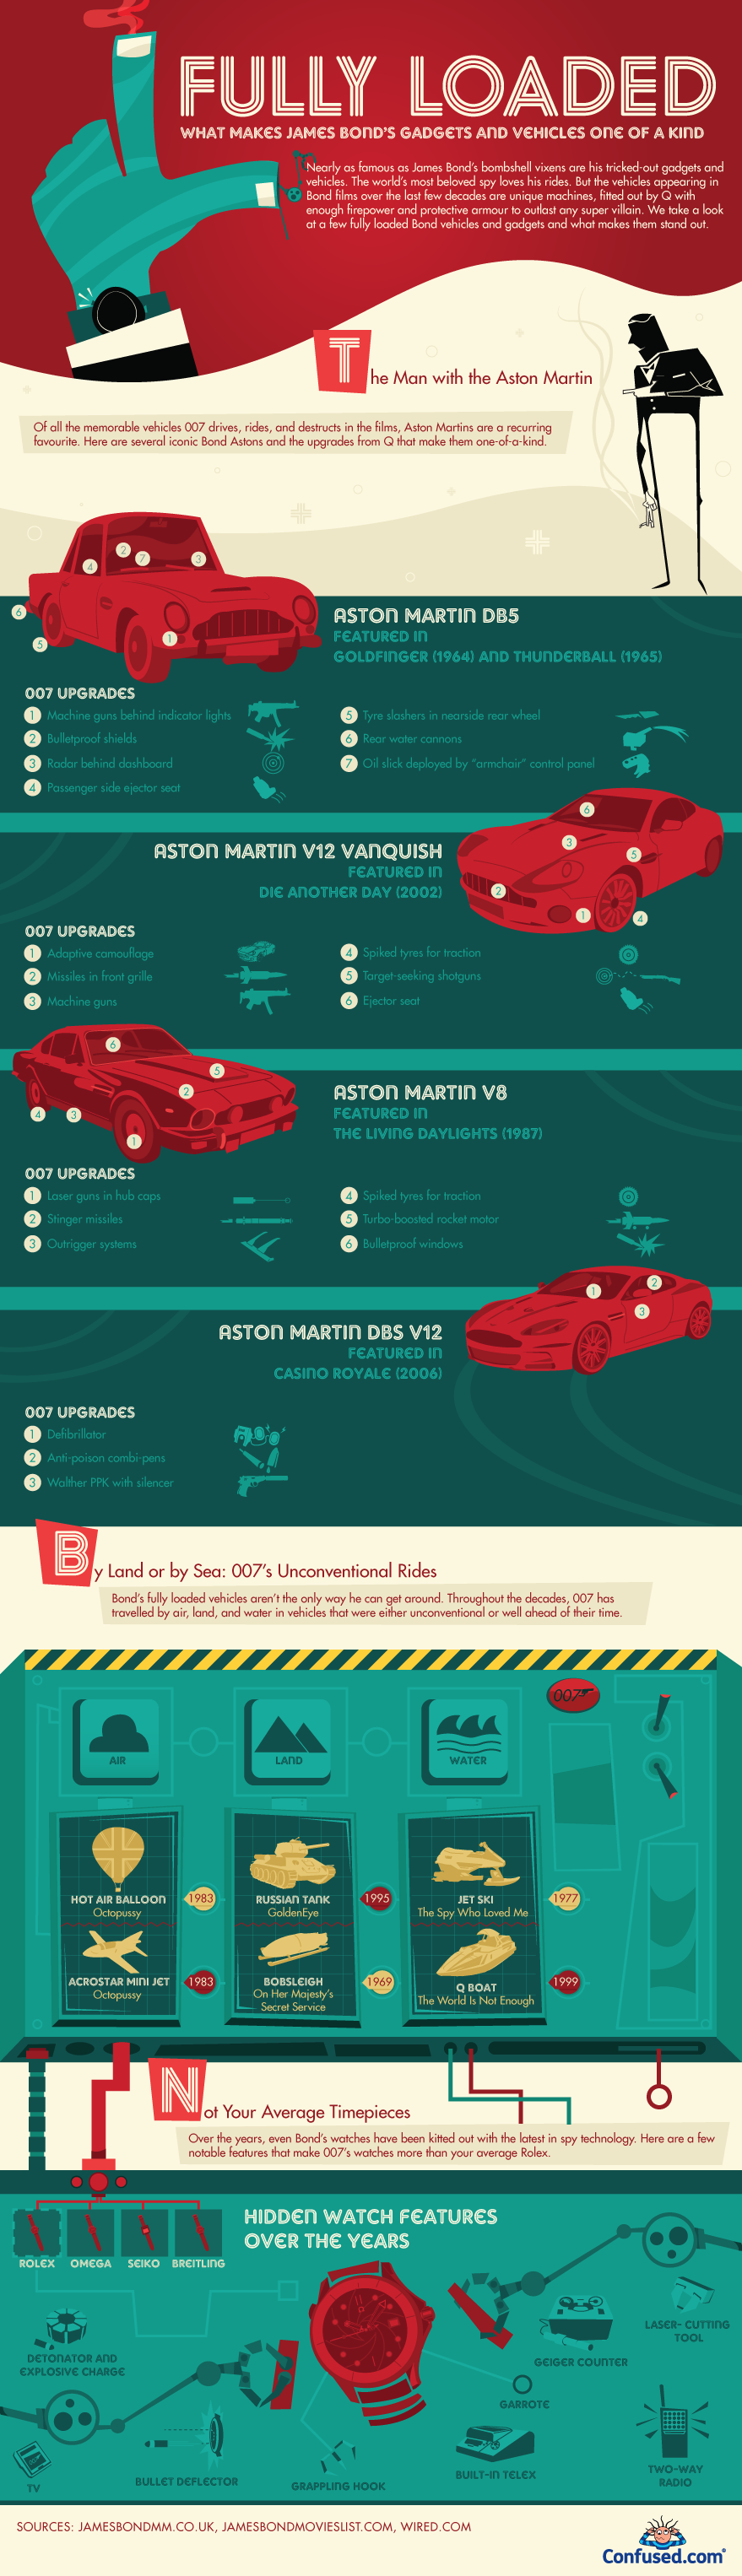 Confused-bond-007-cars-and-gadgets.png